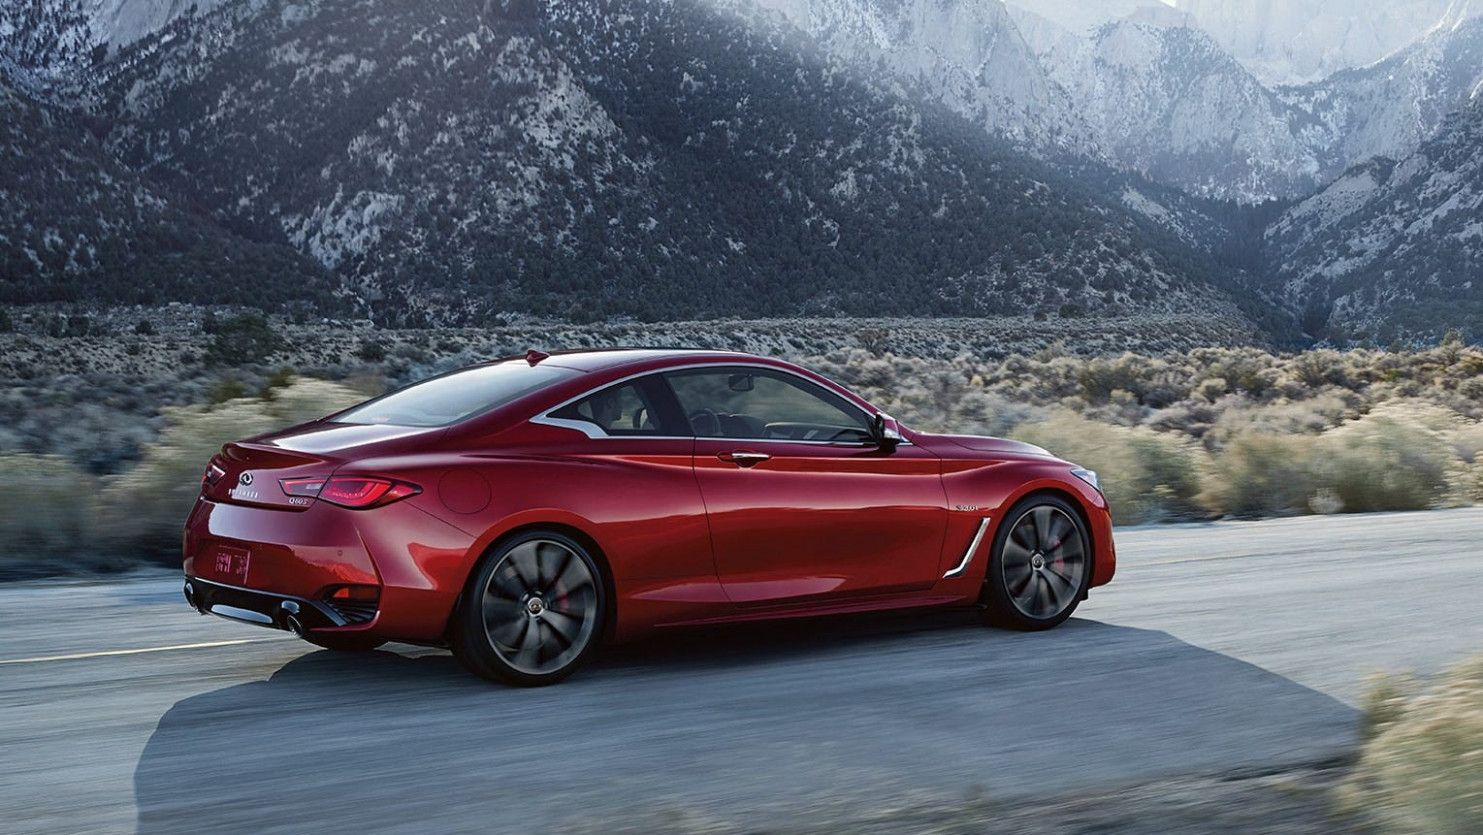 2020 Infiniti Q60 Coupe Release In 2020 Infiniti Coupe Action